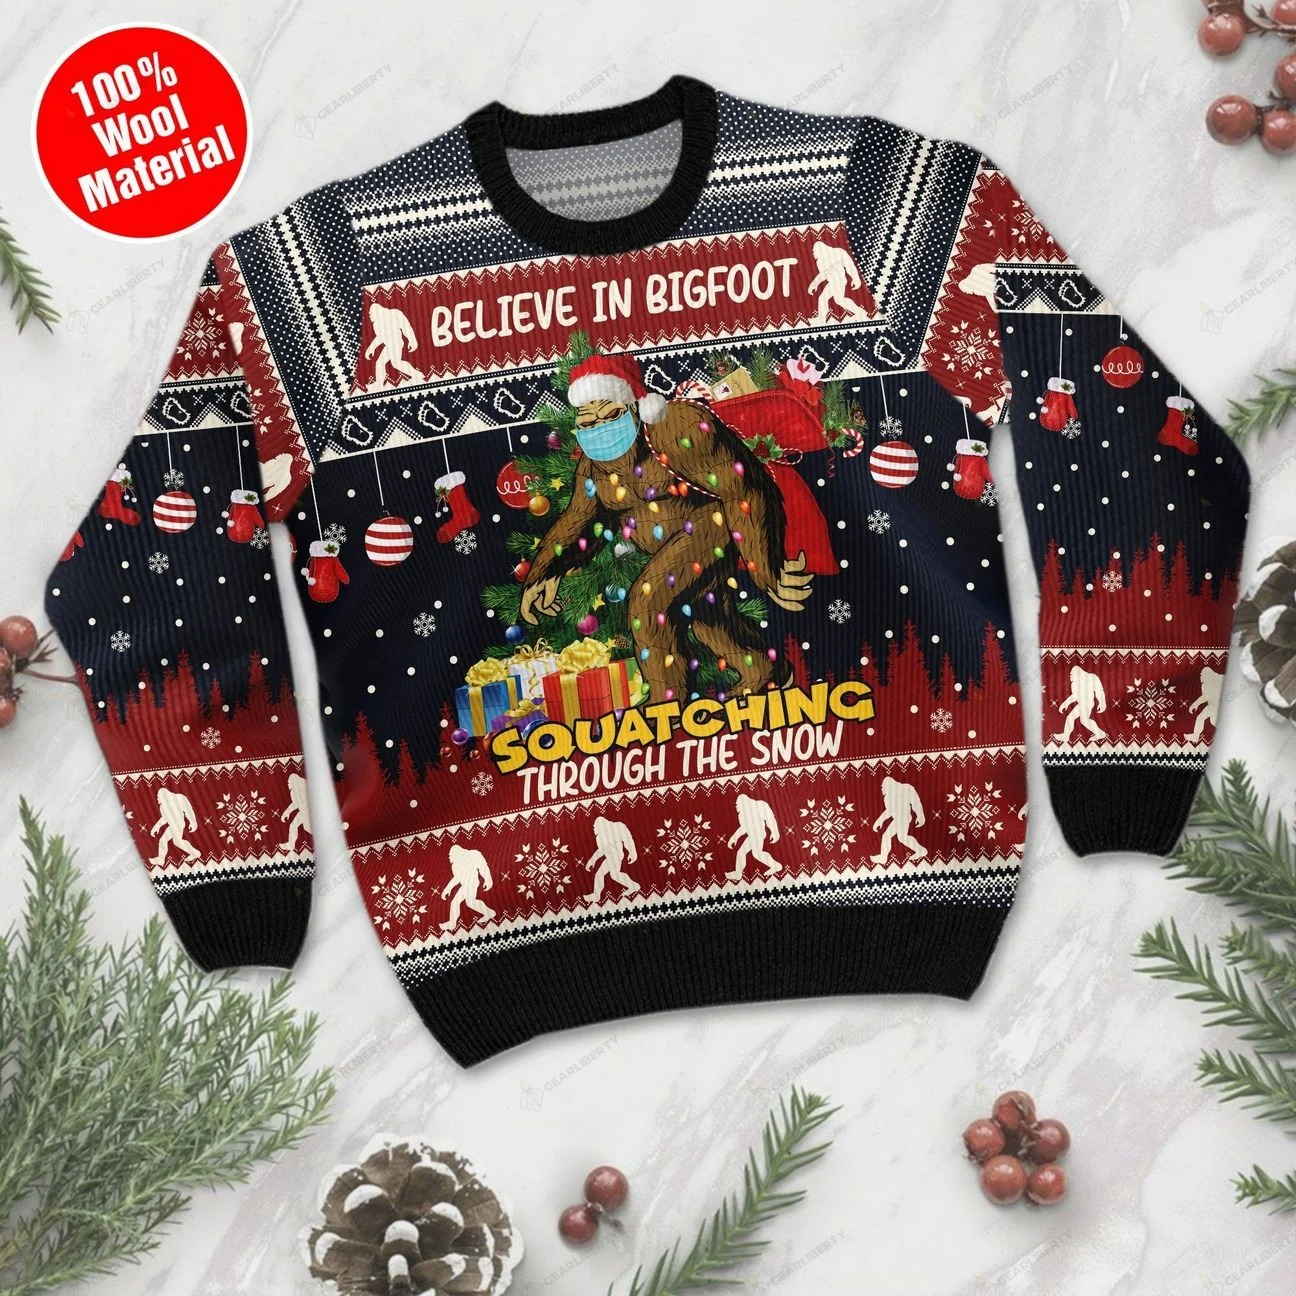 Believe in bigfoot squatching full printing ugly sweatshirt-front